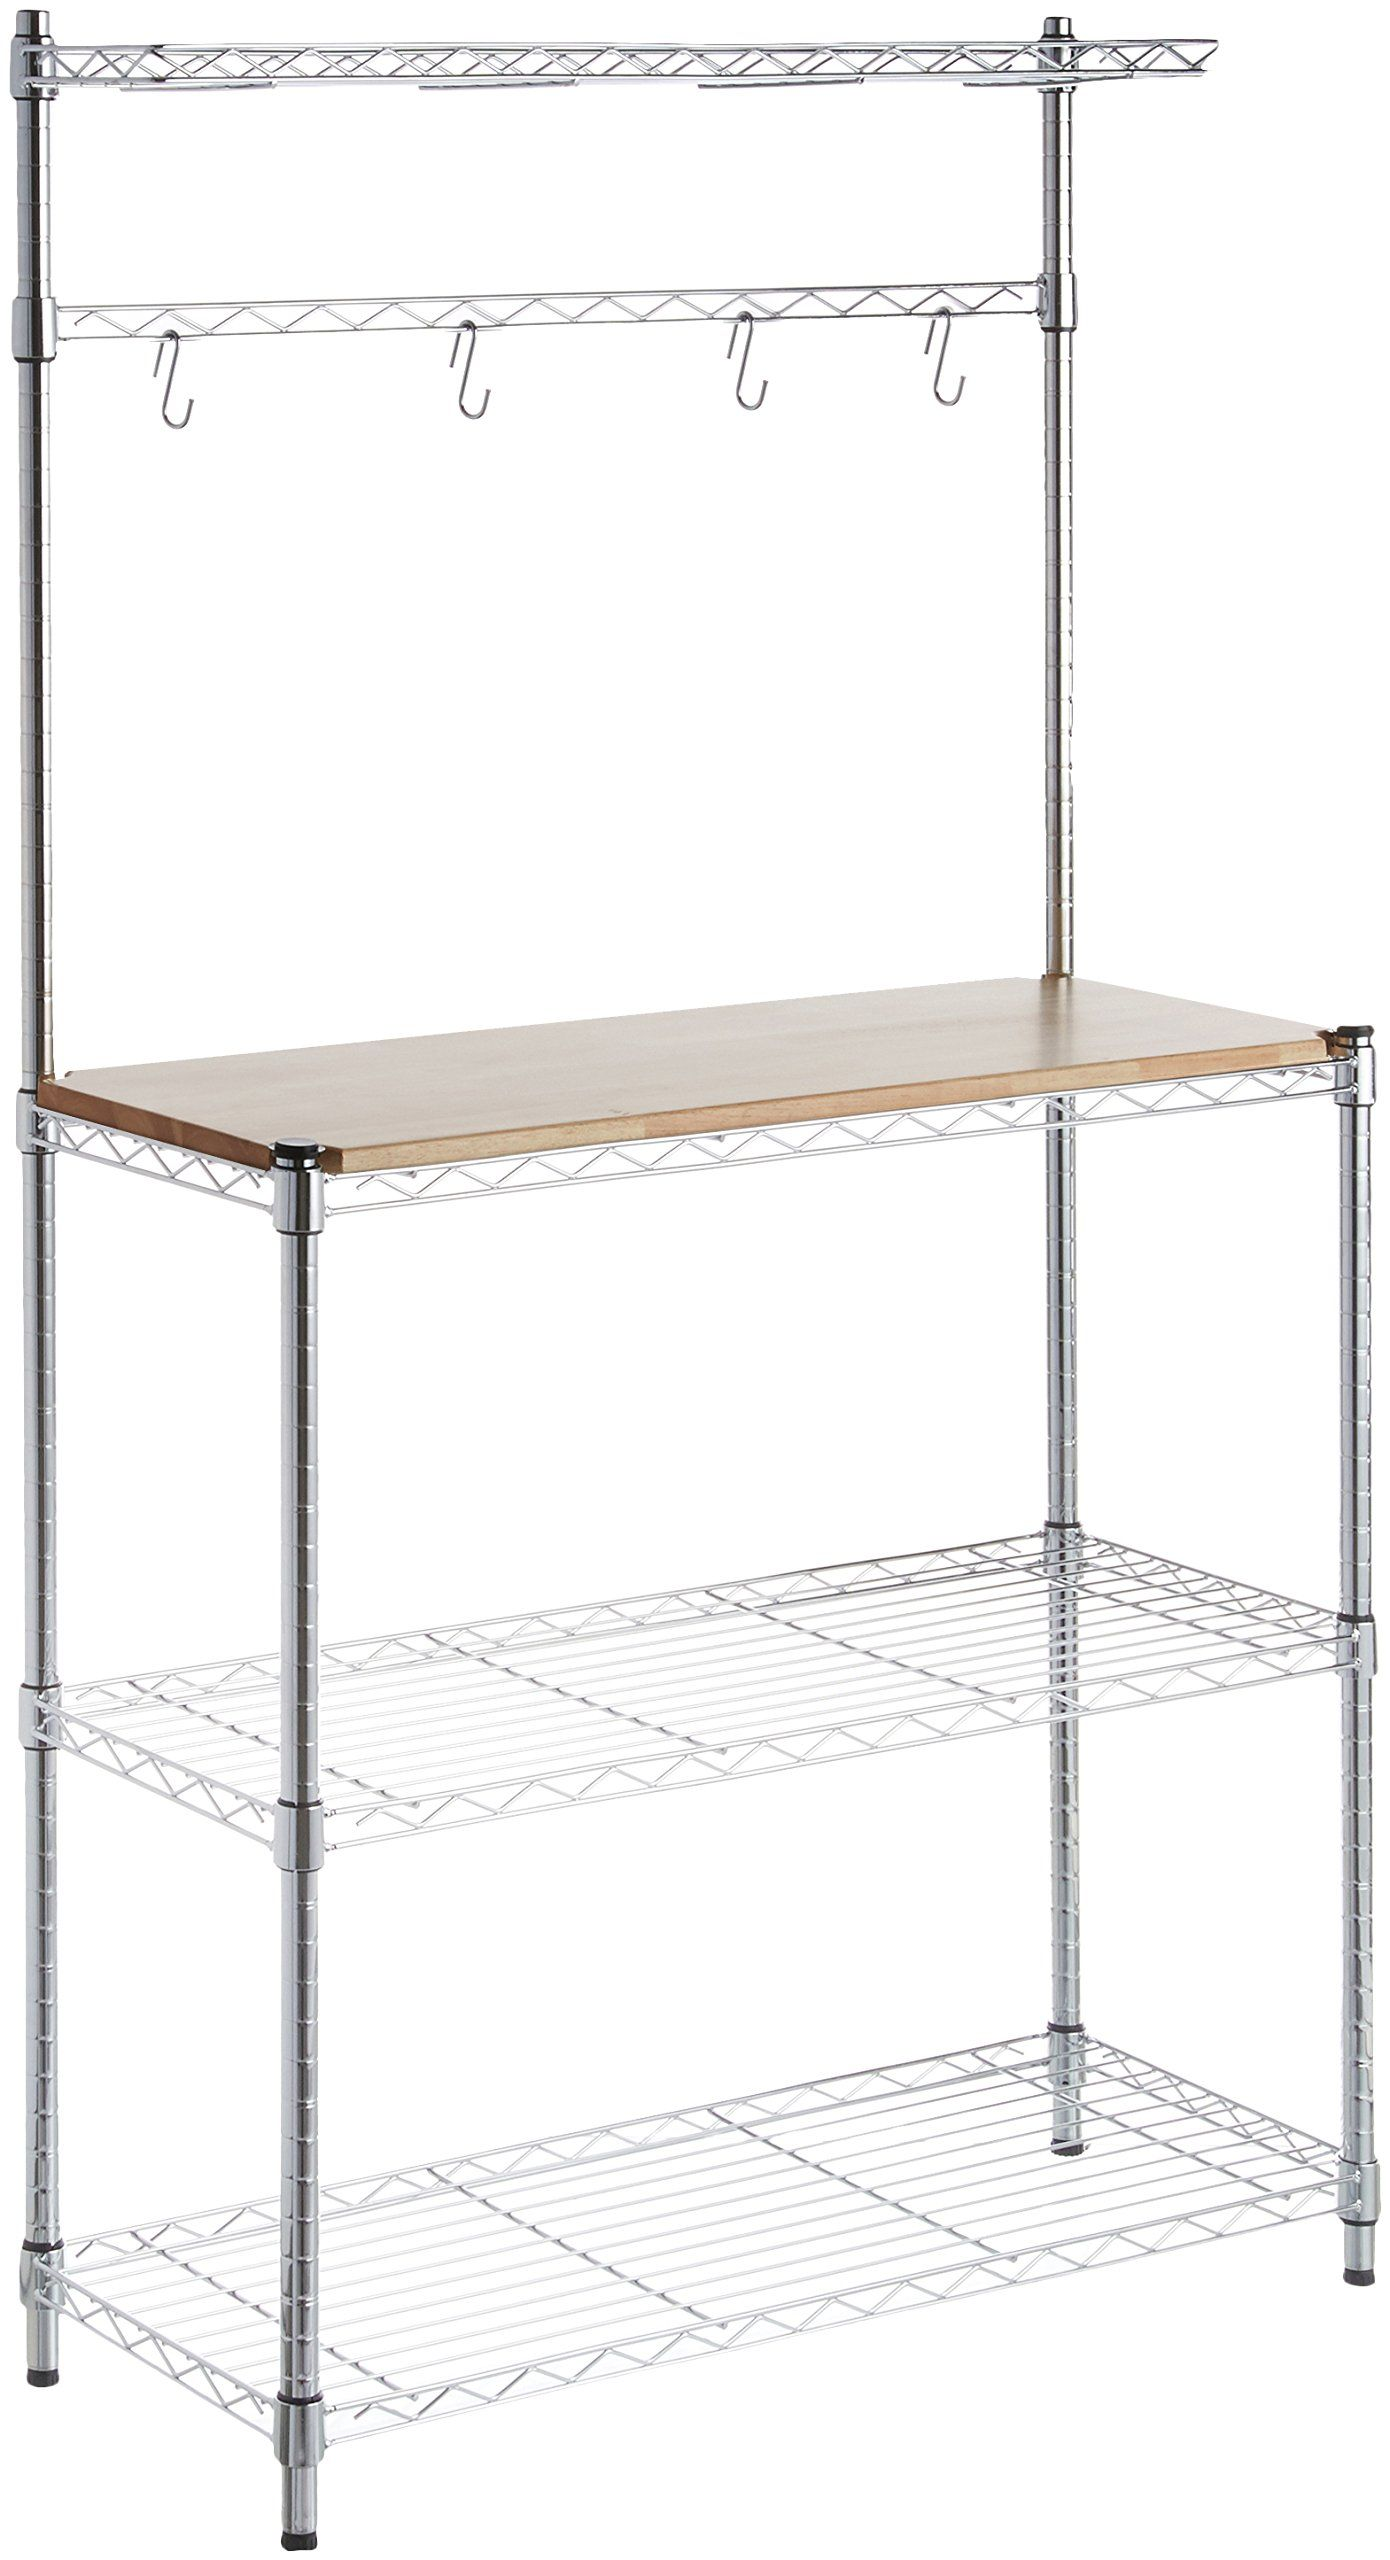 Amazonbasics Kitchen Storage Bakers Rack With Table Wood Chrome